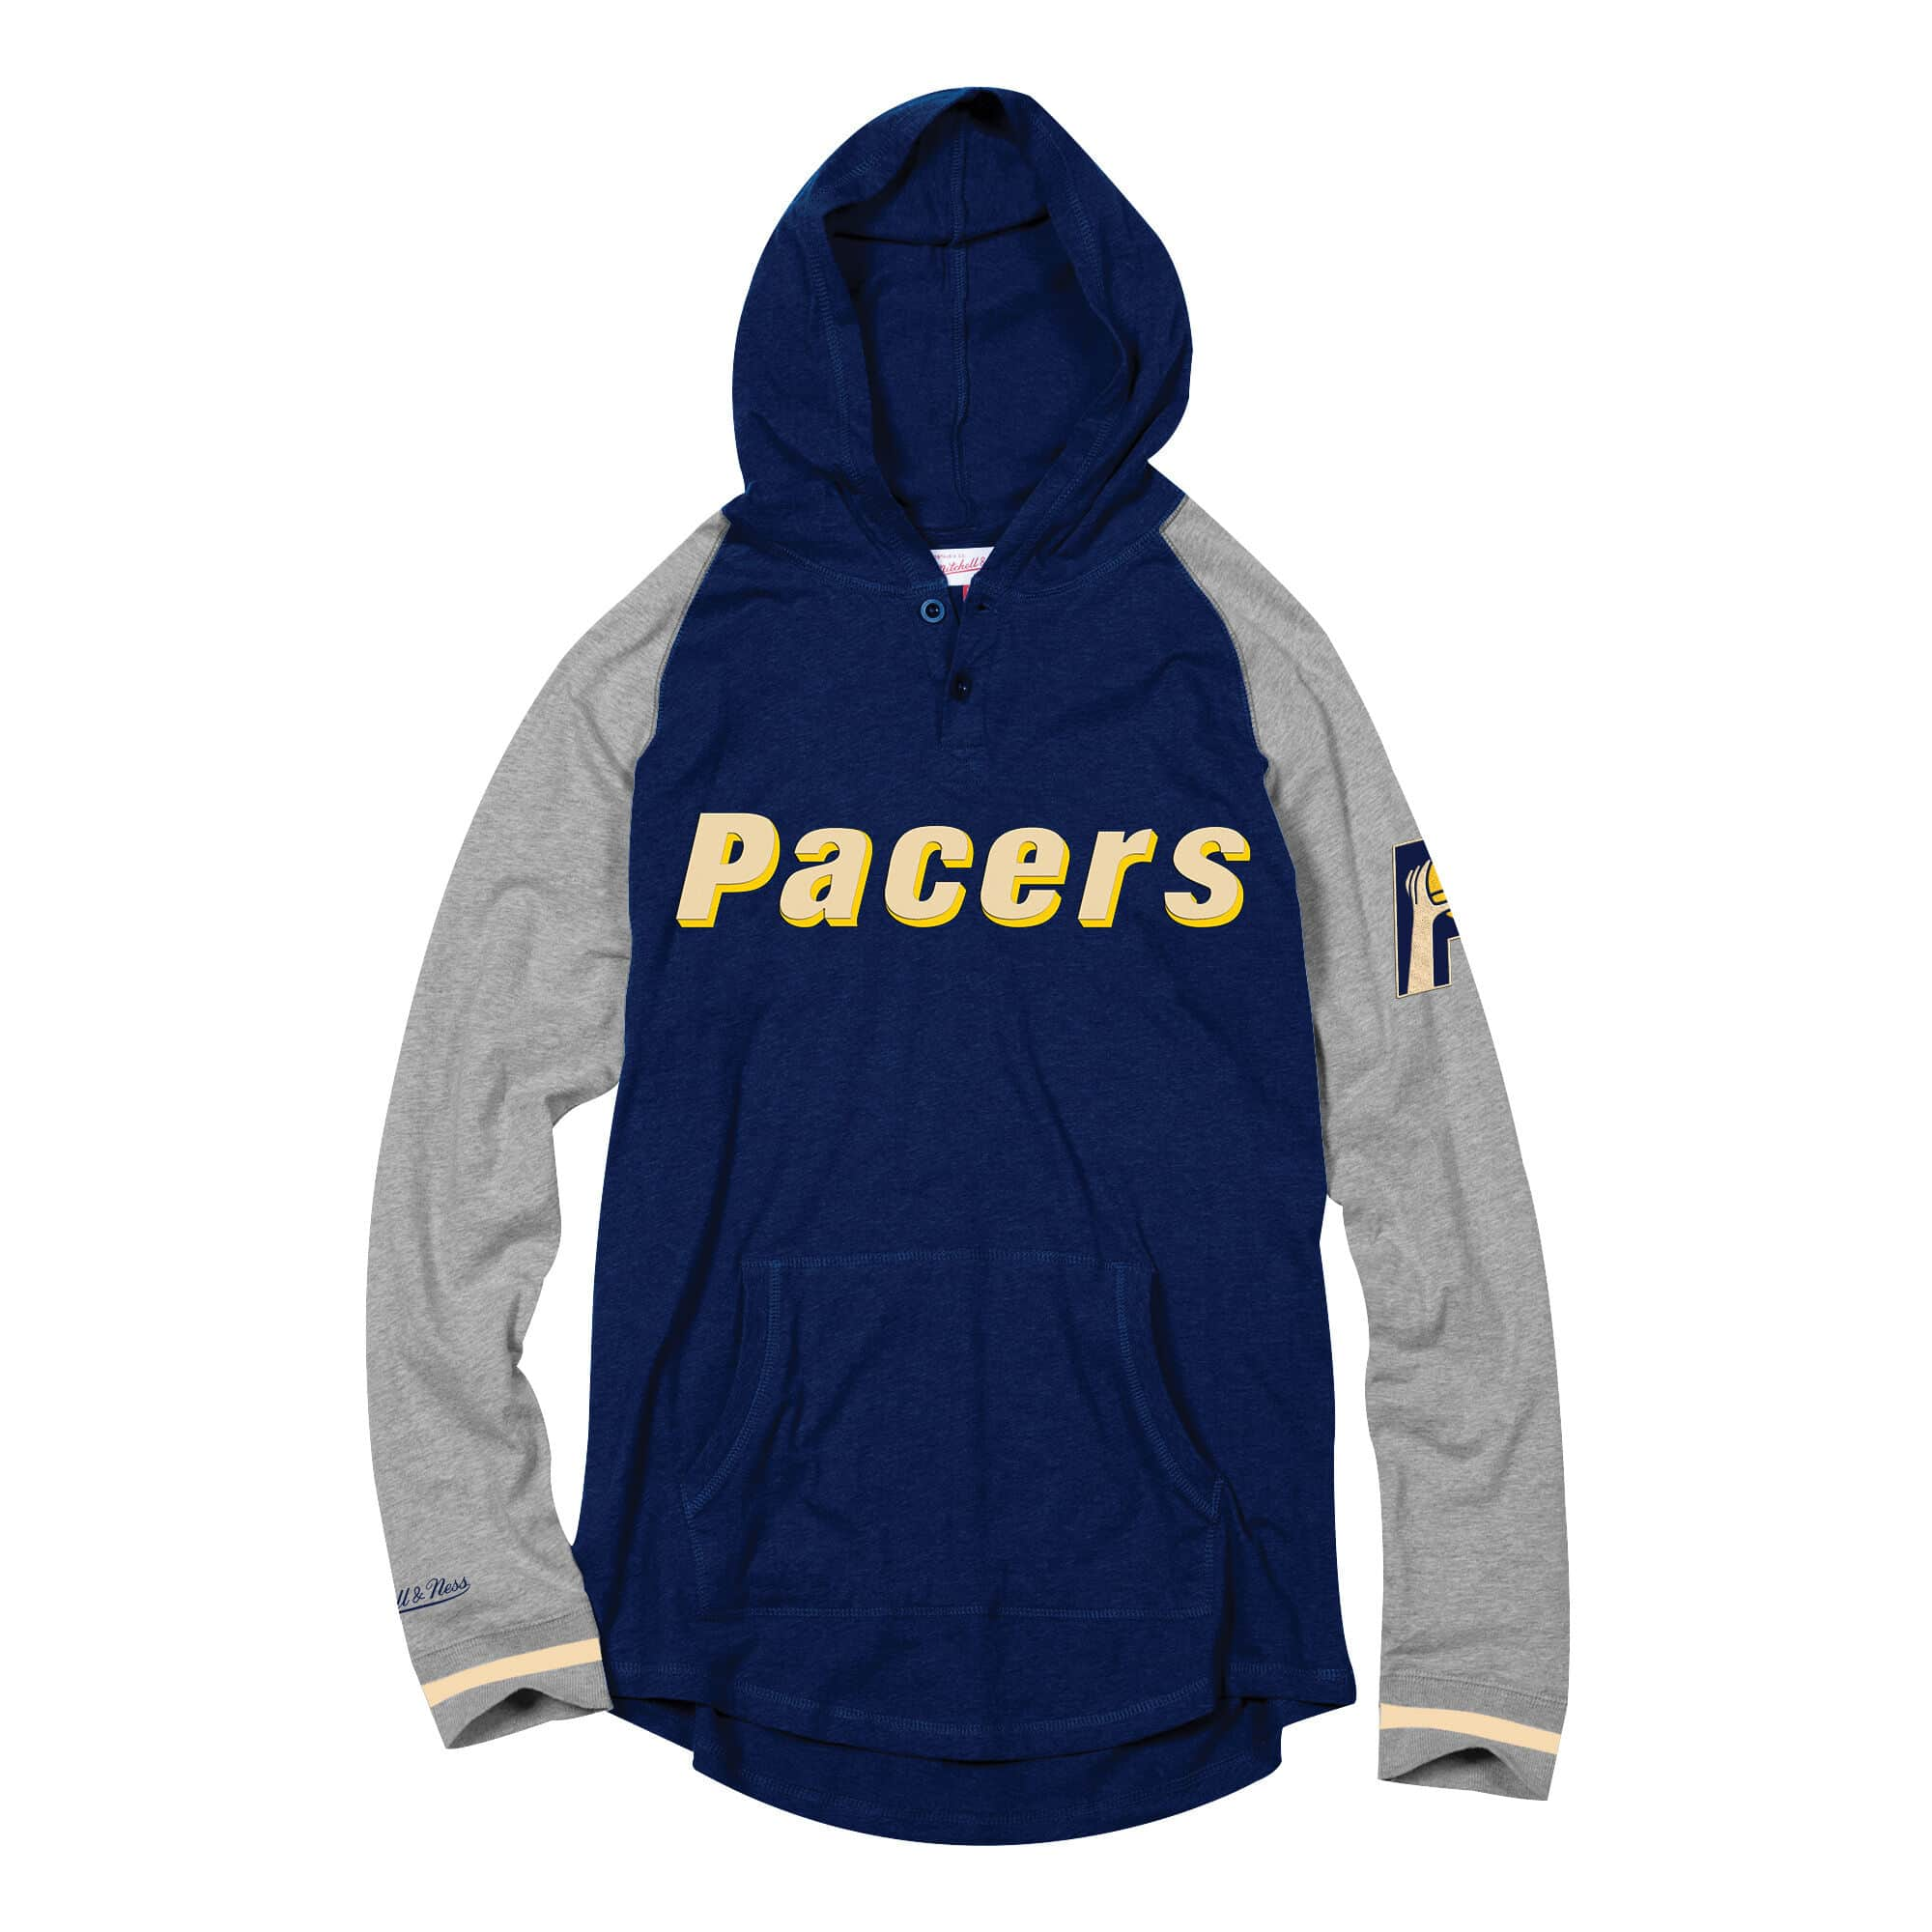 quality design 89813 1c5ae Slugfest Lightweight Hoody Indiana Pacers